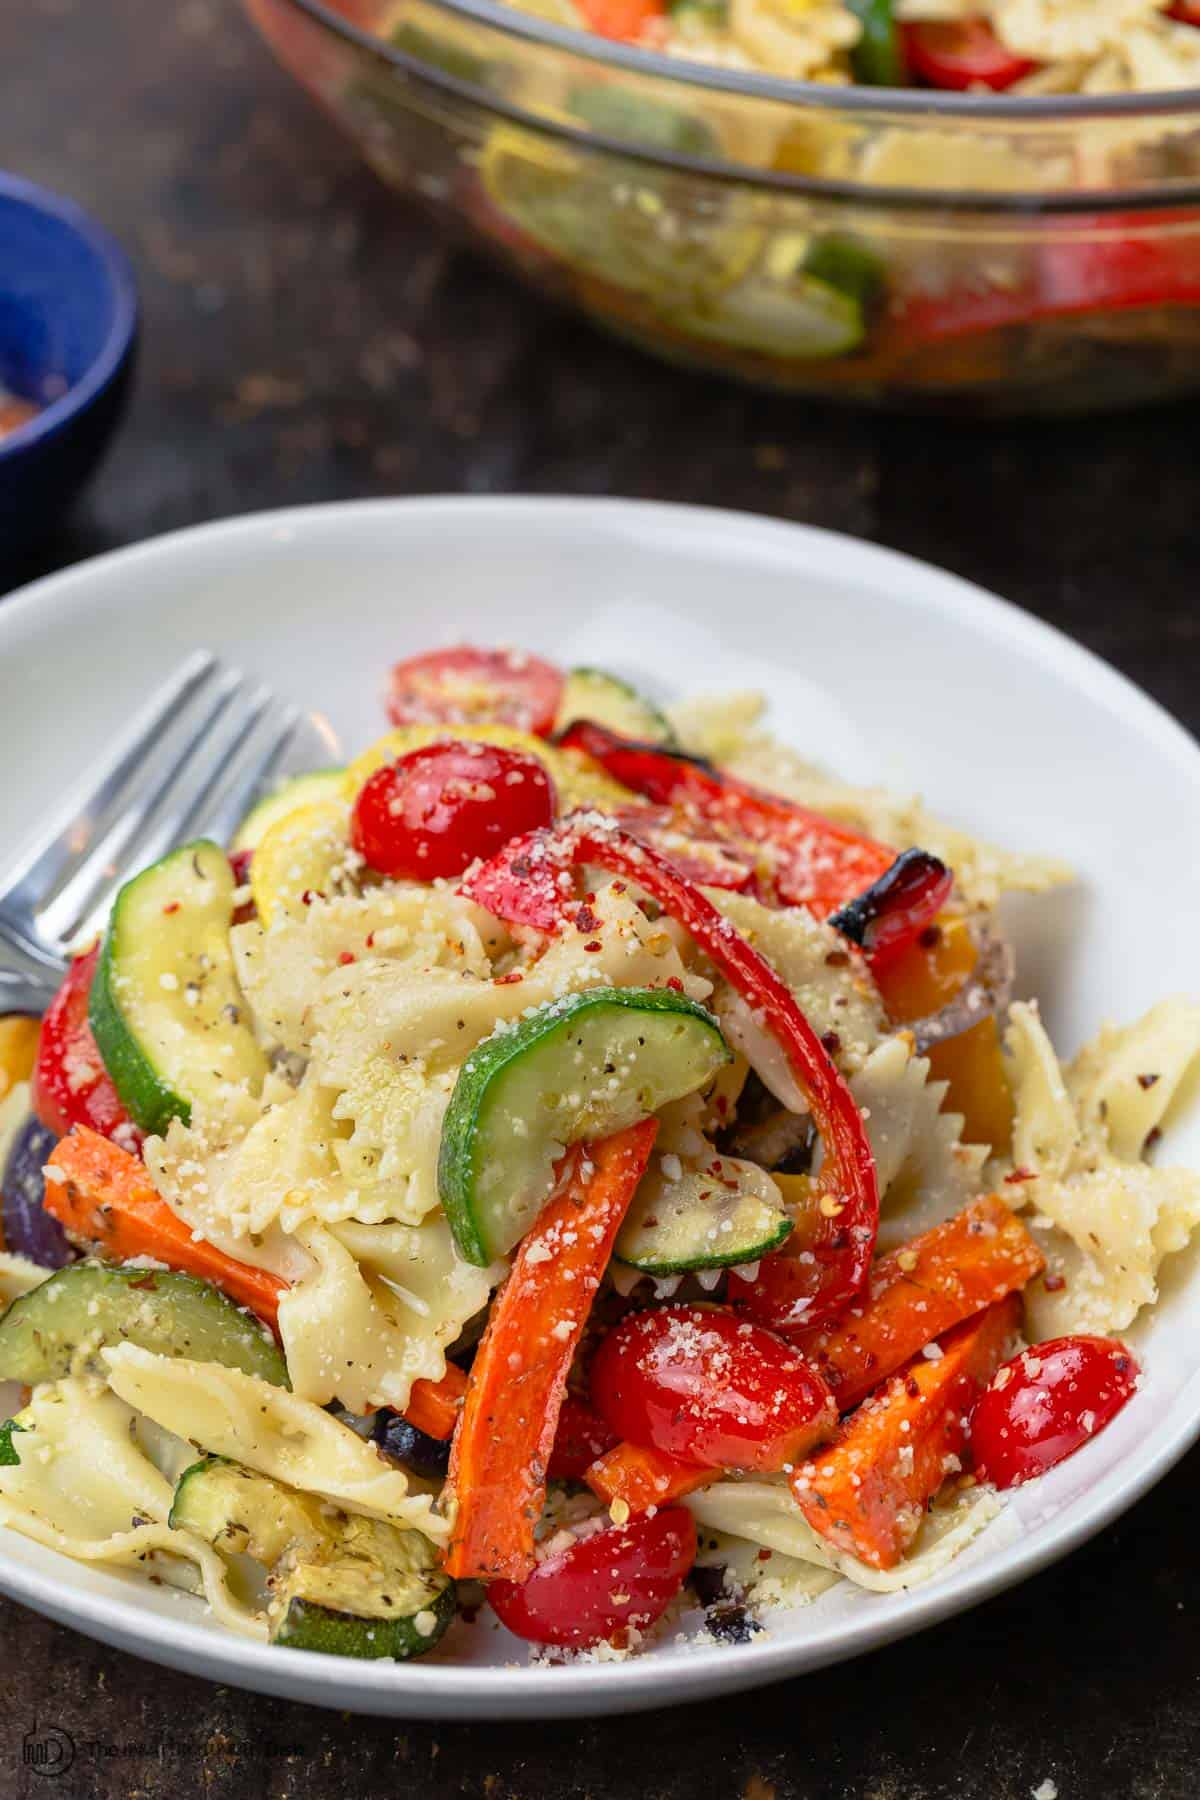 Pasta primavera with roasted veggies in a bowl. A large serving bowl to the side